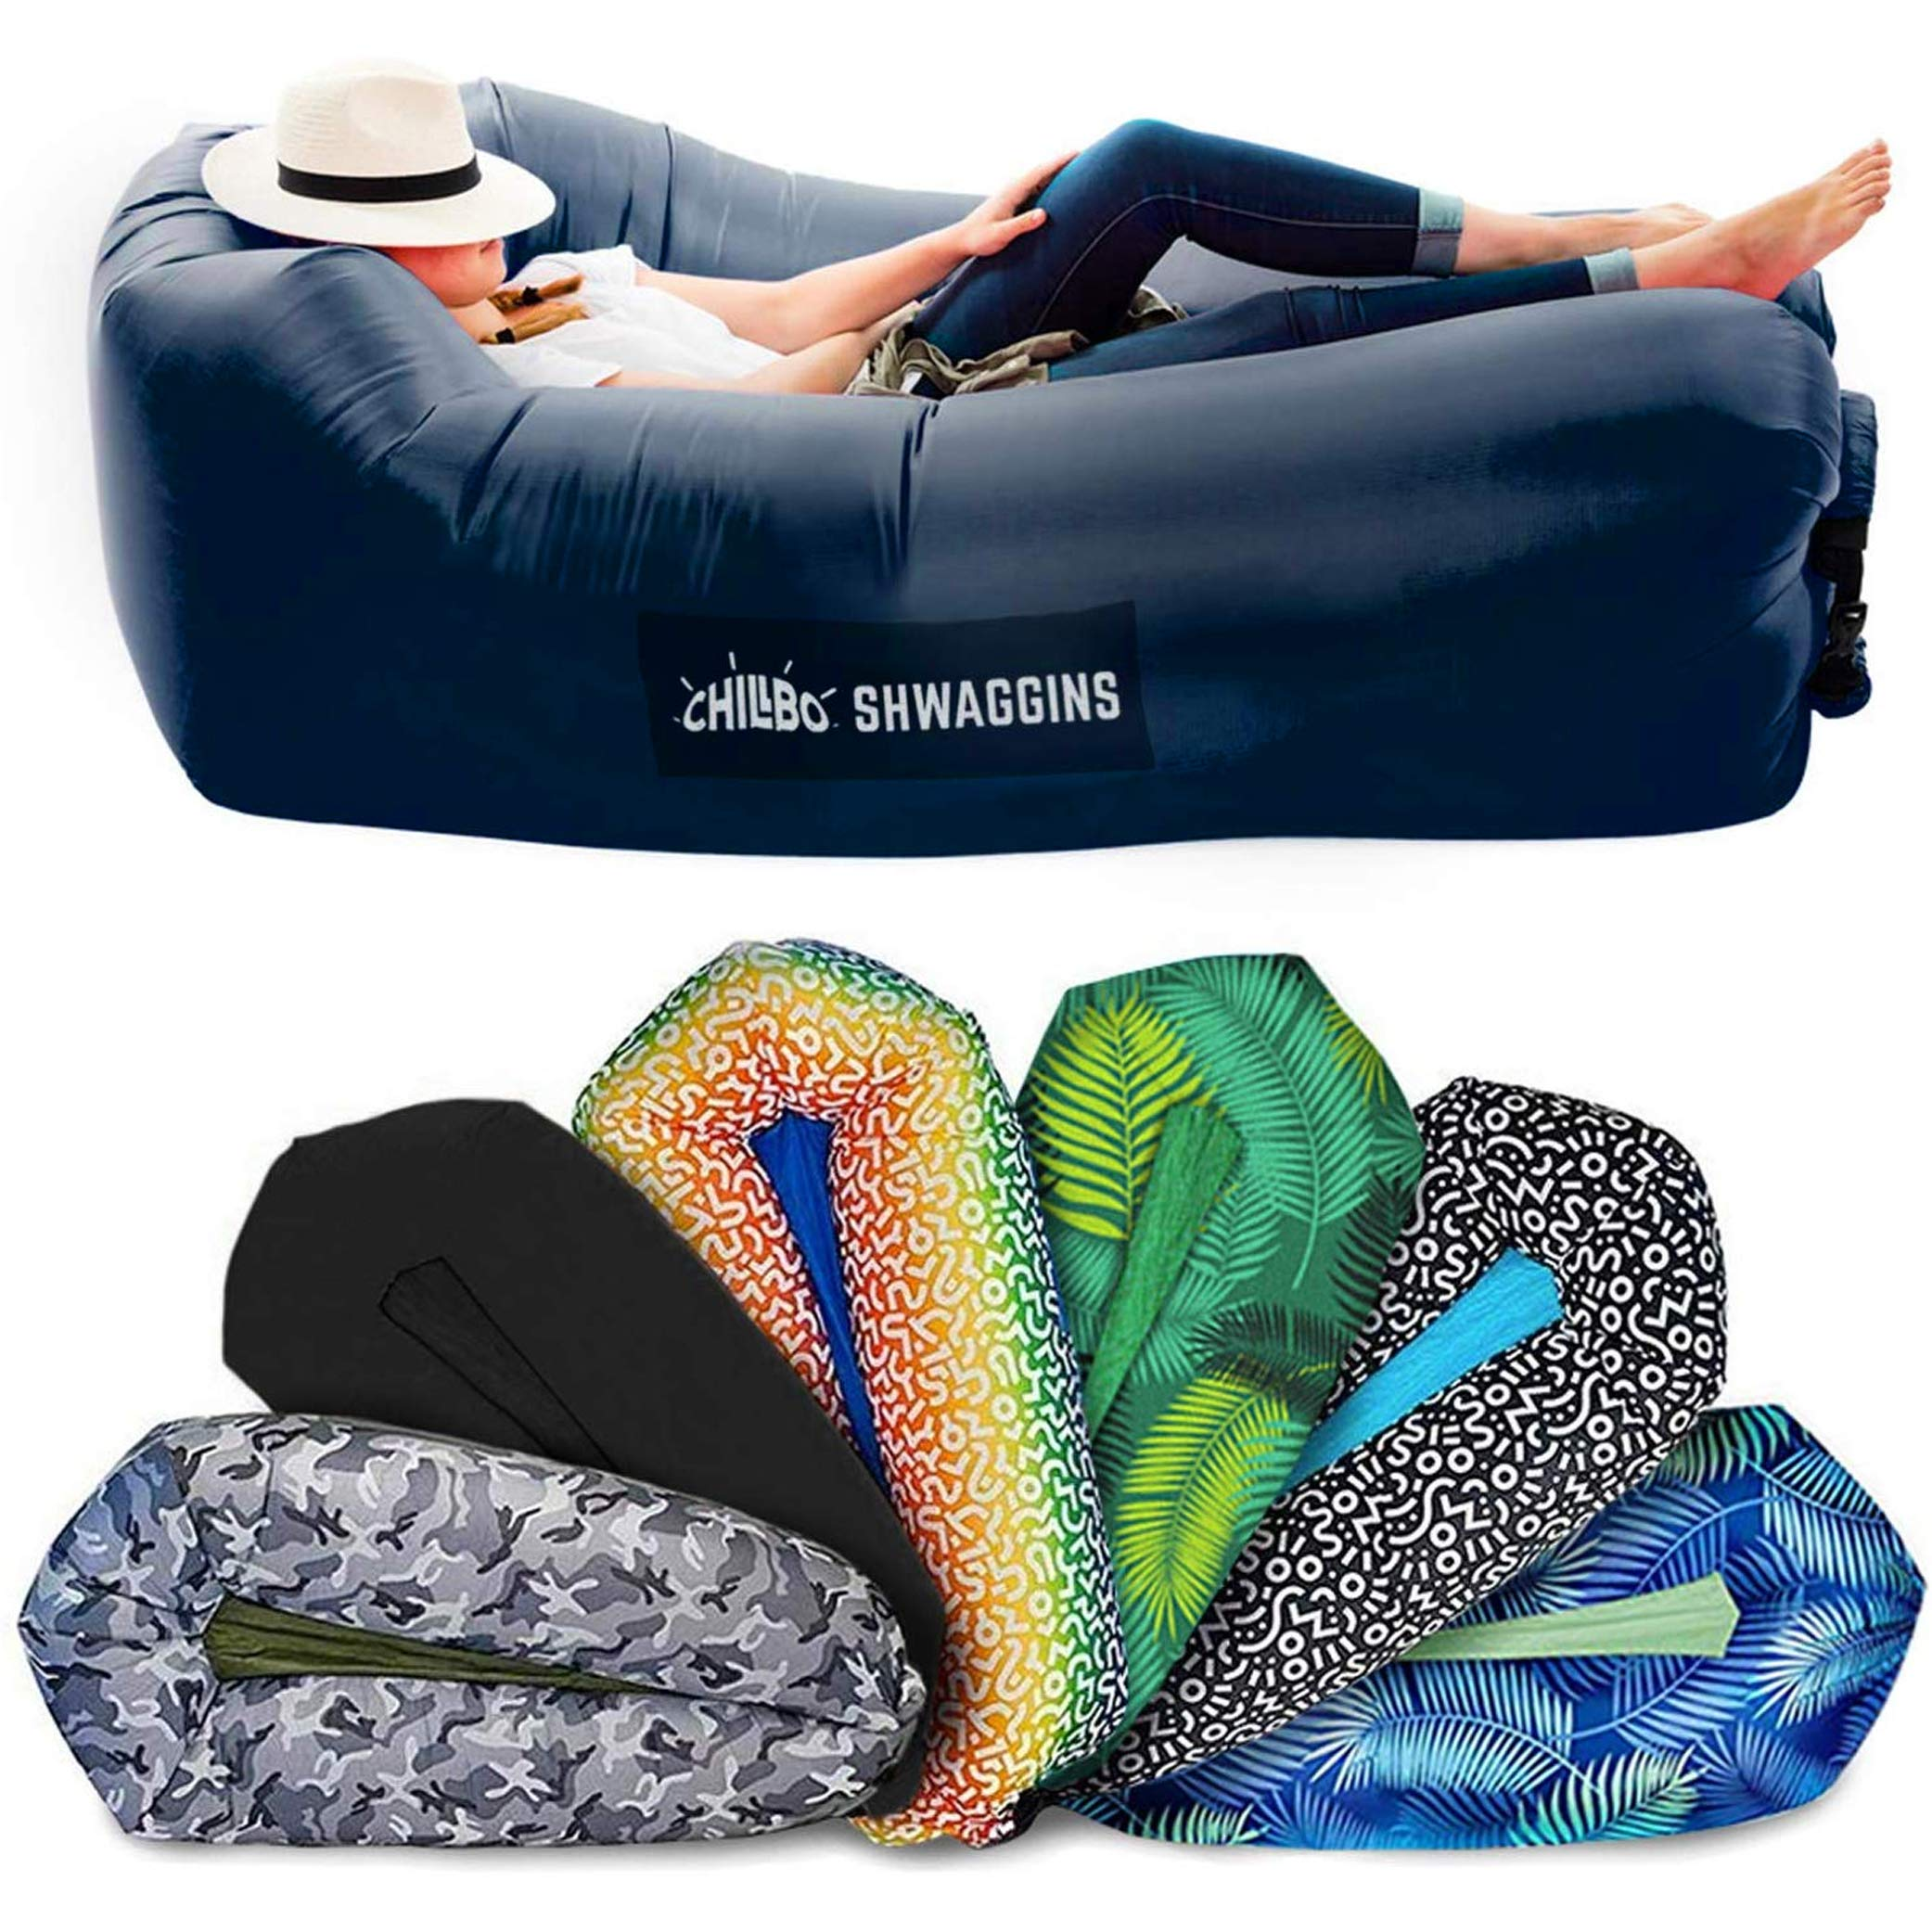 Chillbo SHWAGGINS 2.0 Best Inflatable Lounger Portable Hammock Air Sofa and Camping Chair Ideal Gift Inflatable Couch and Beach Chair Camping Accessories for Picnics & Festivals (Blue) by Chillbo